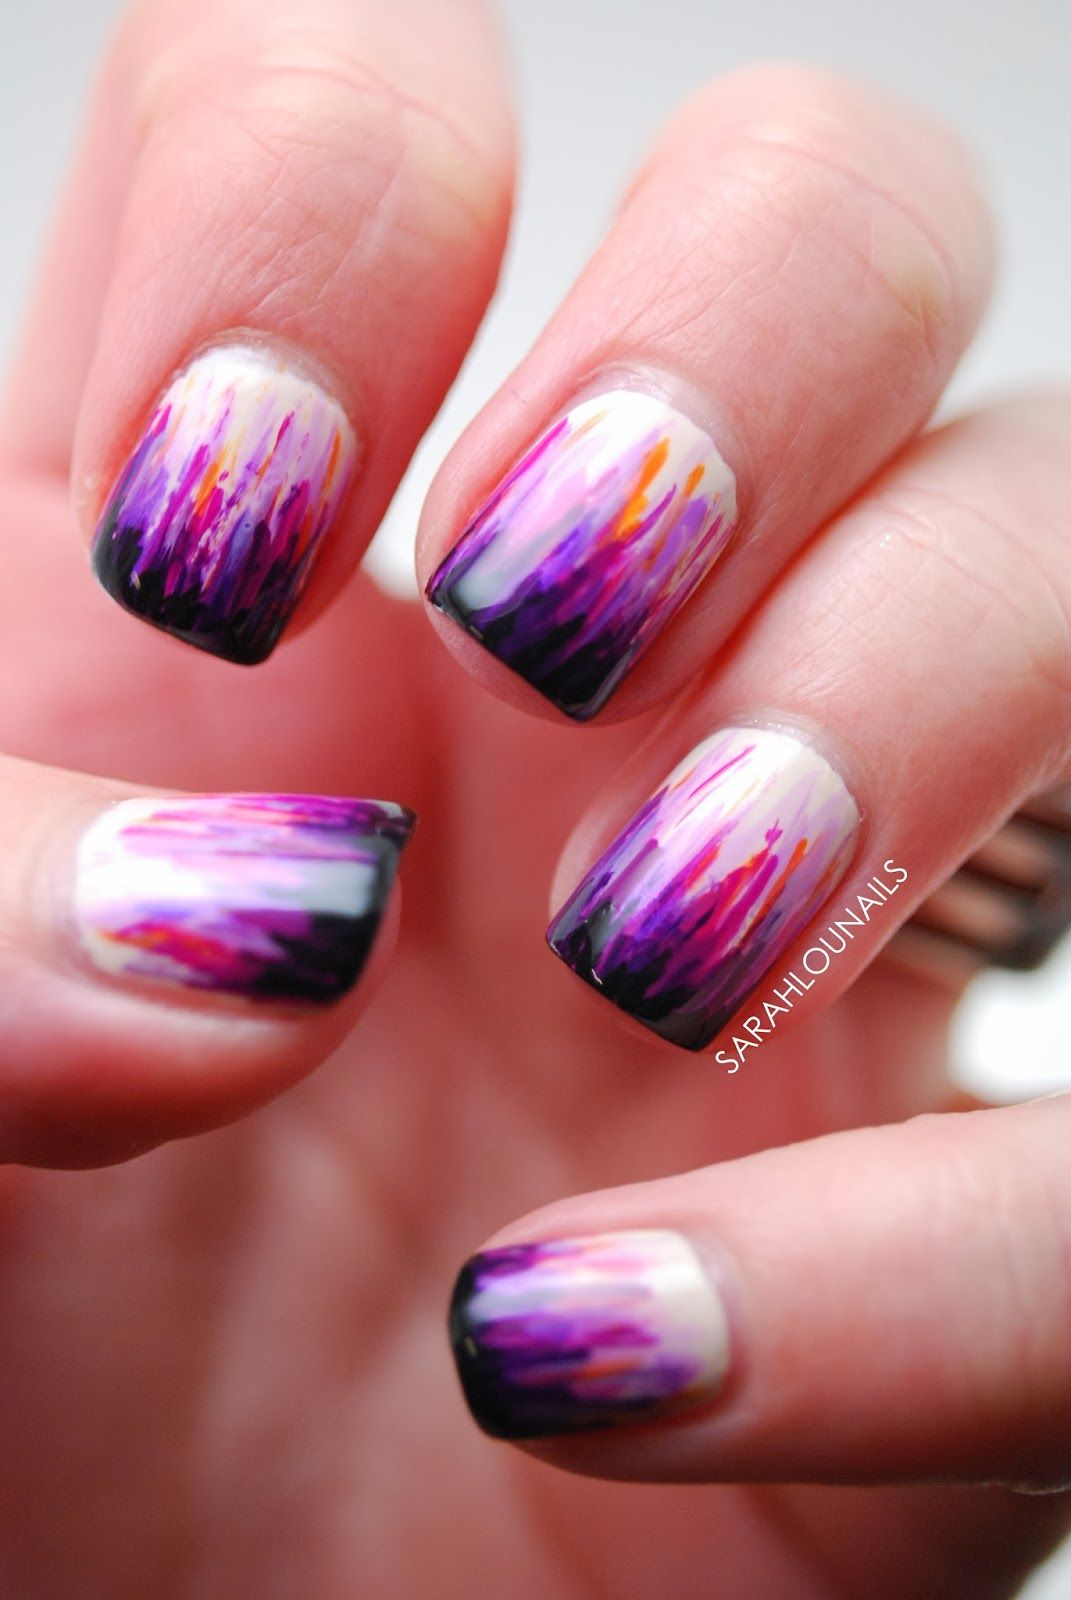 How to do ombre nail art at home nails pinterest nail art